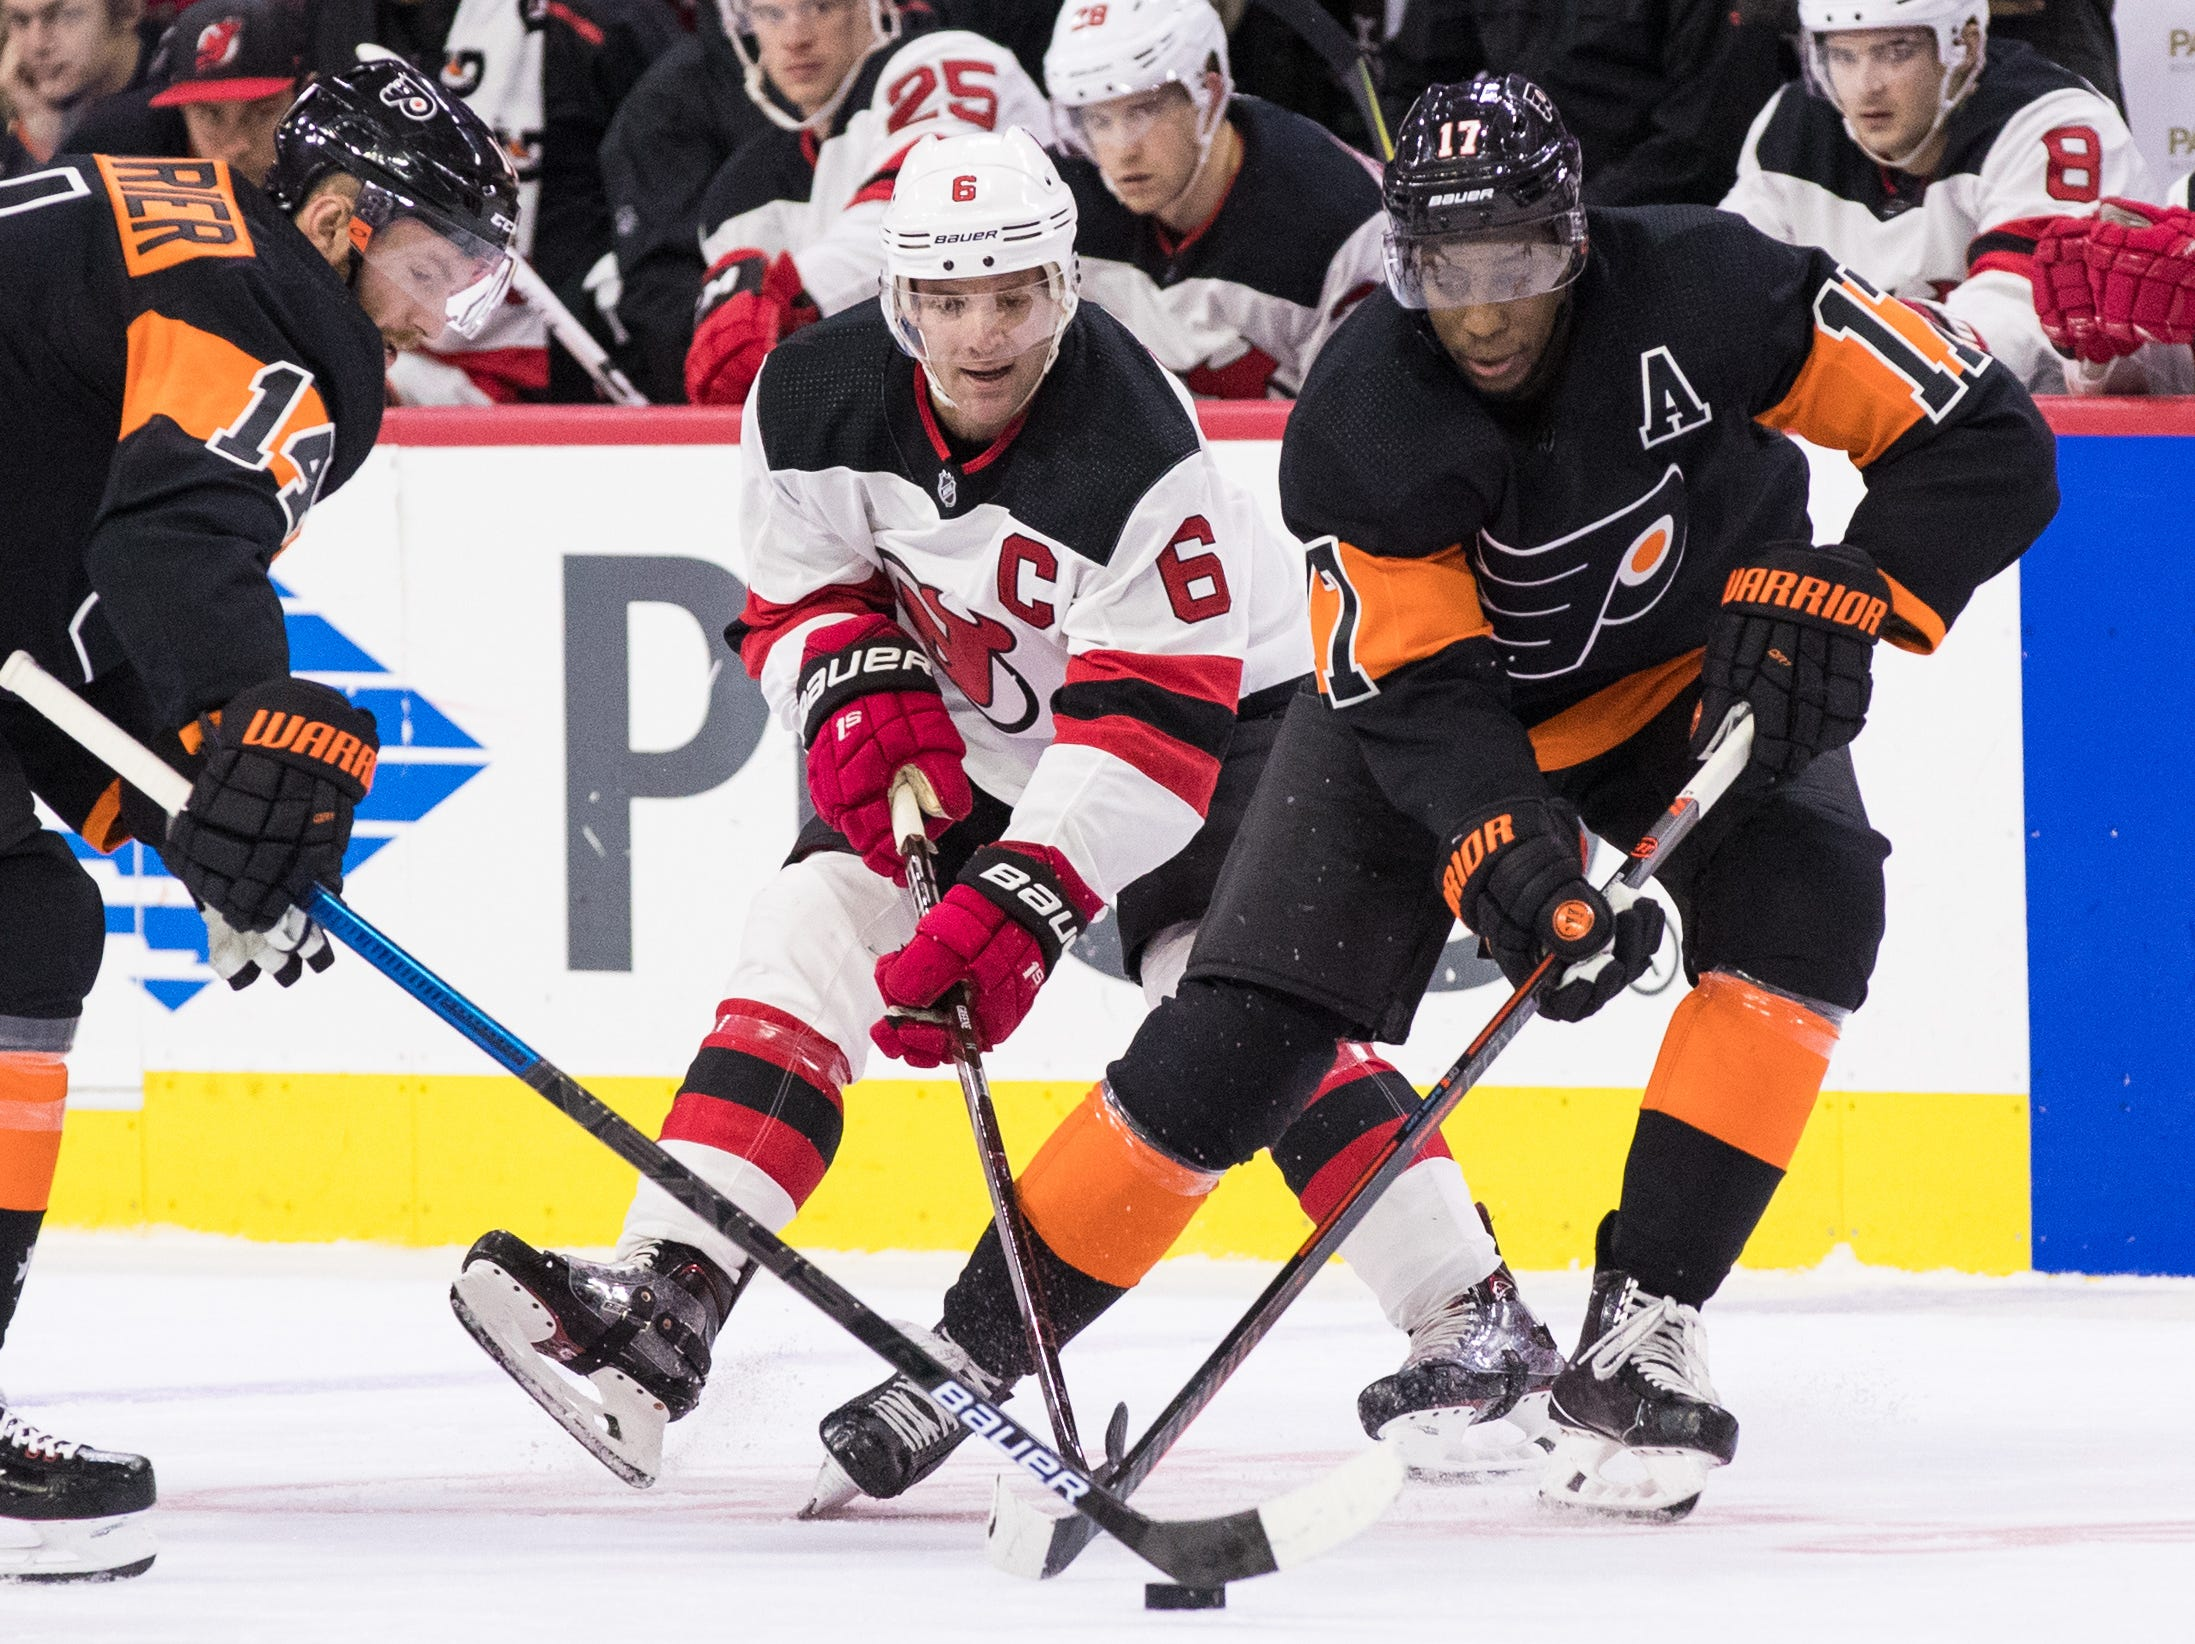 Flyers vs. Devils: Game 19 preview, line combos, broadcast info